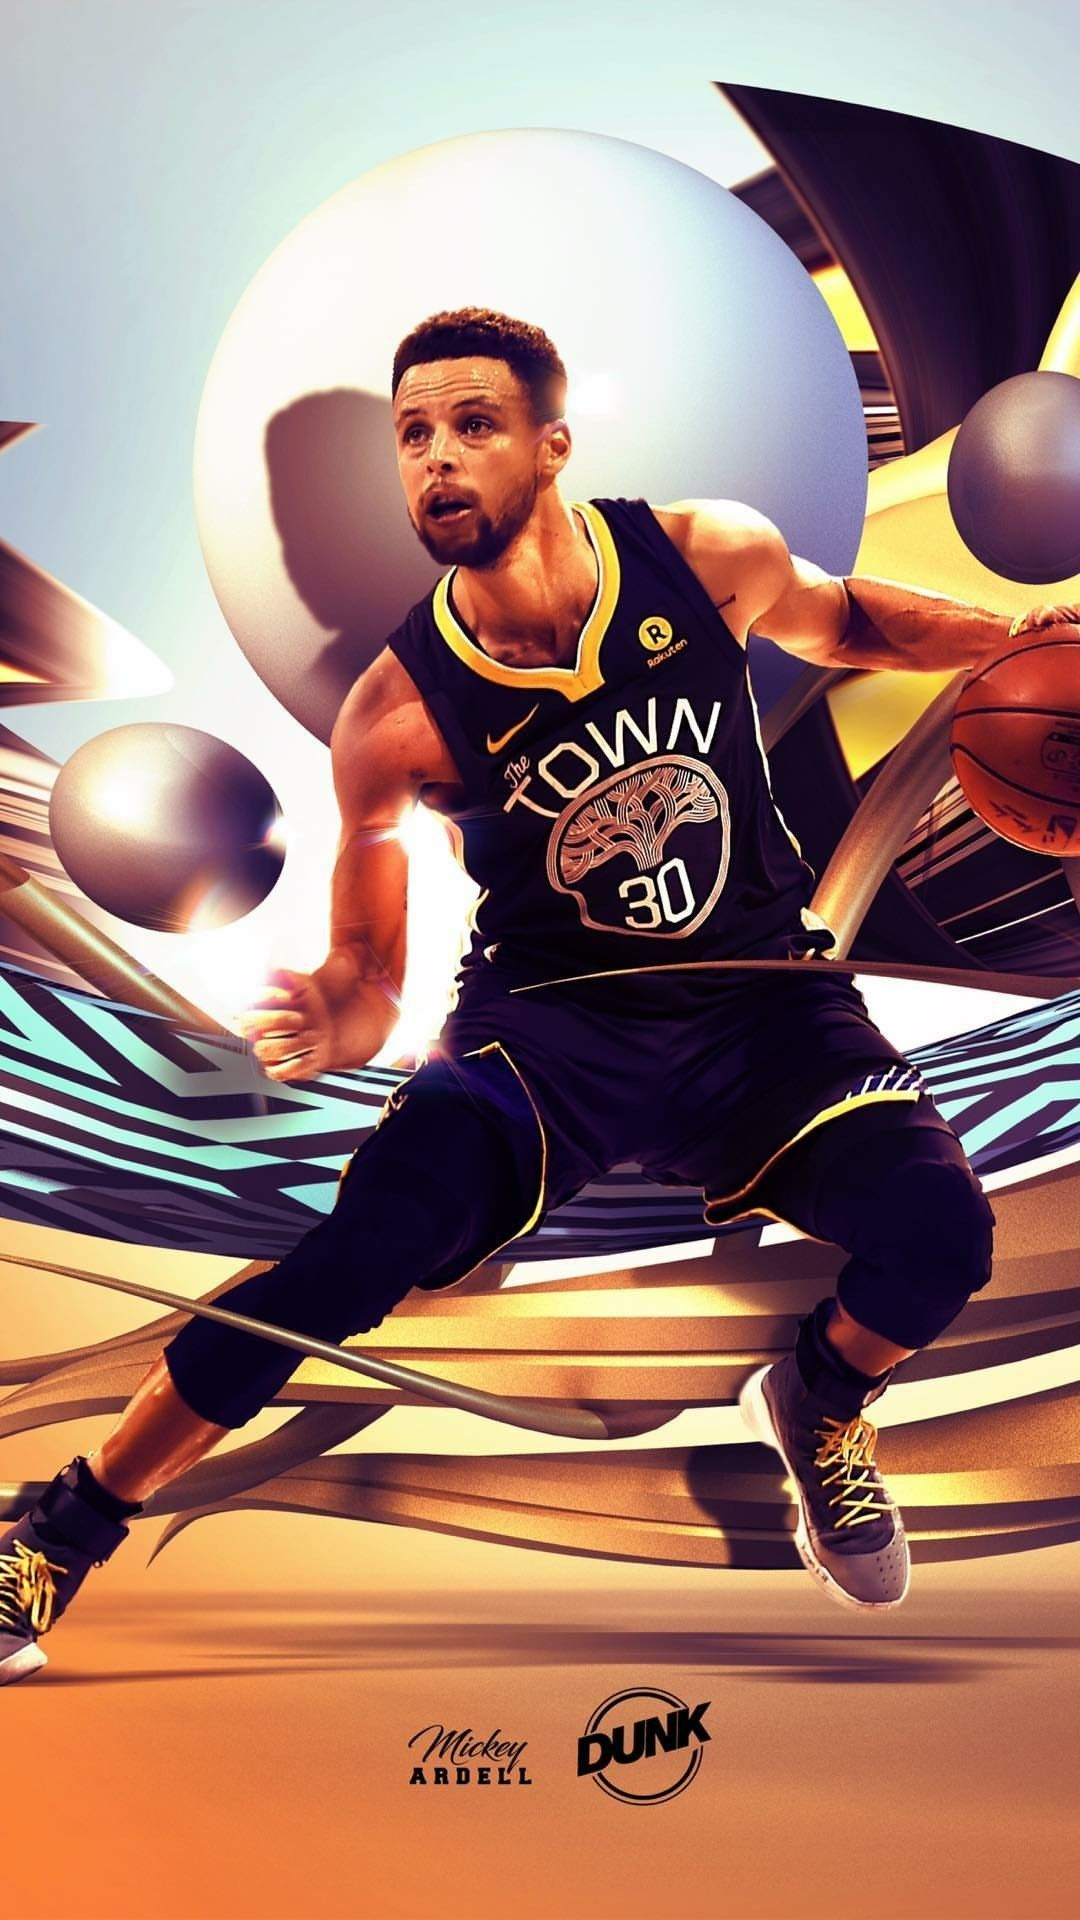 Stephen Curry 2020 Wallpapers 1080x1920